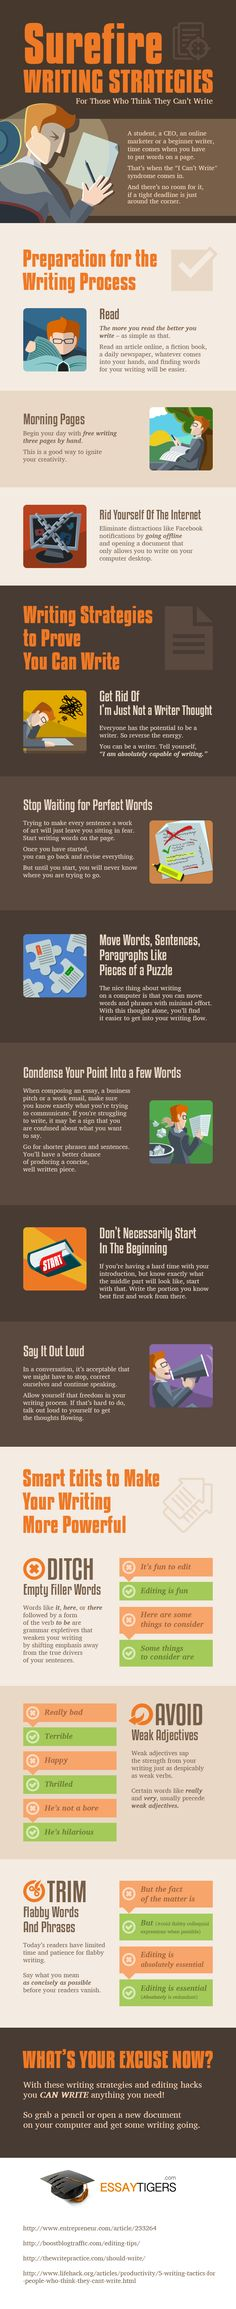 Surefire Writing Strategies for Those Who Think They Can't Write #Infographic #Education